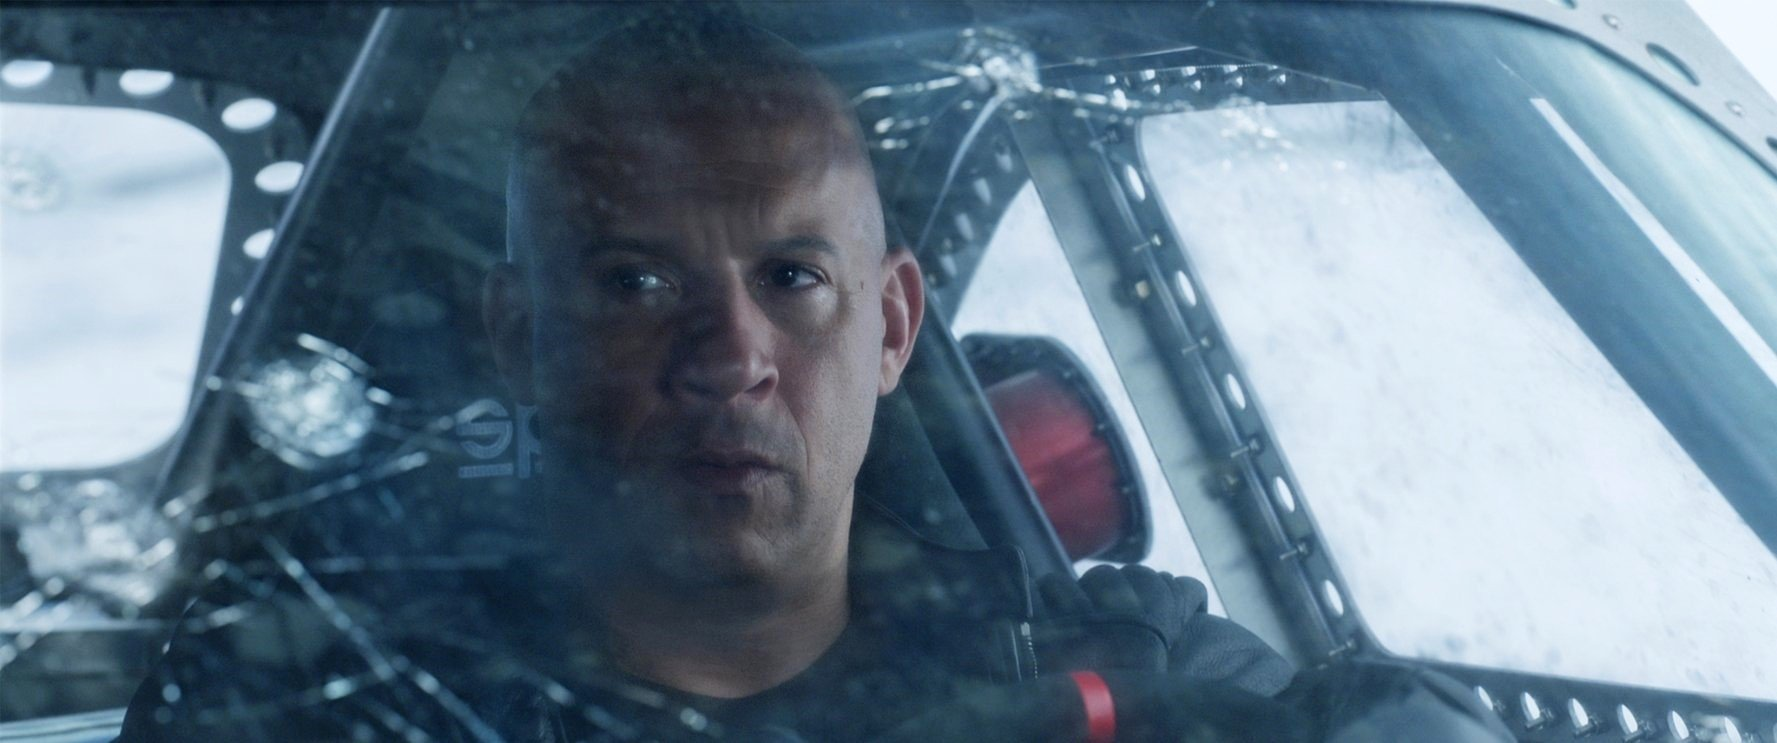 Vin Diesel stars as Dominic Toretto in Universal Pictures' The Fate of the Furious (2017)